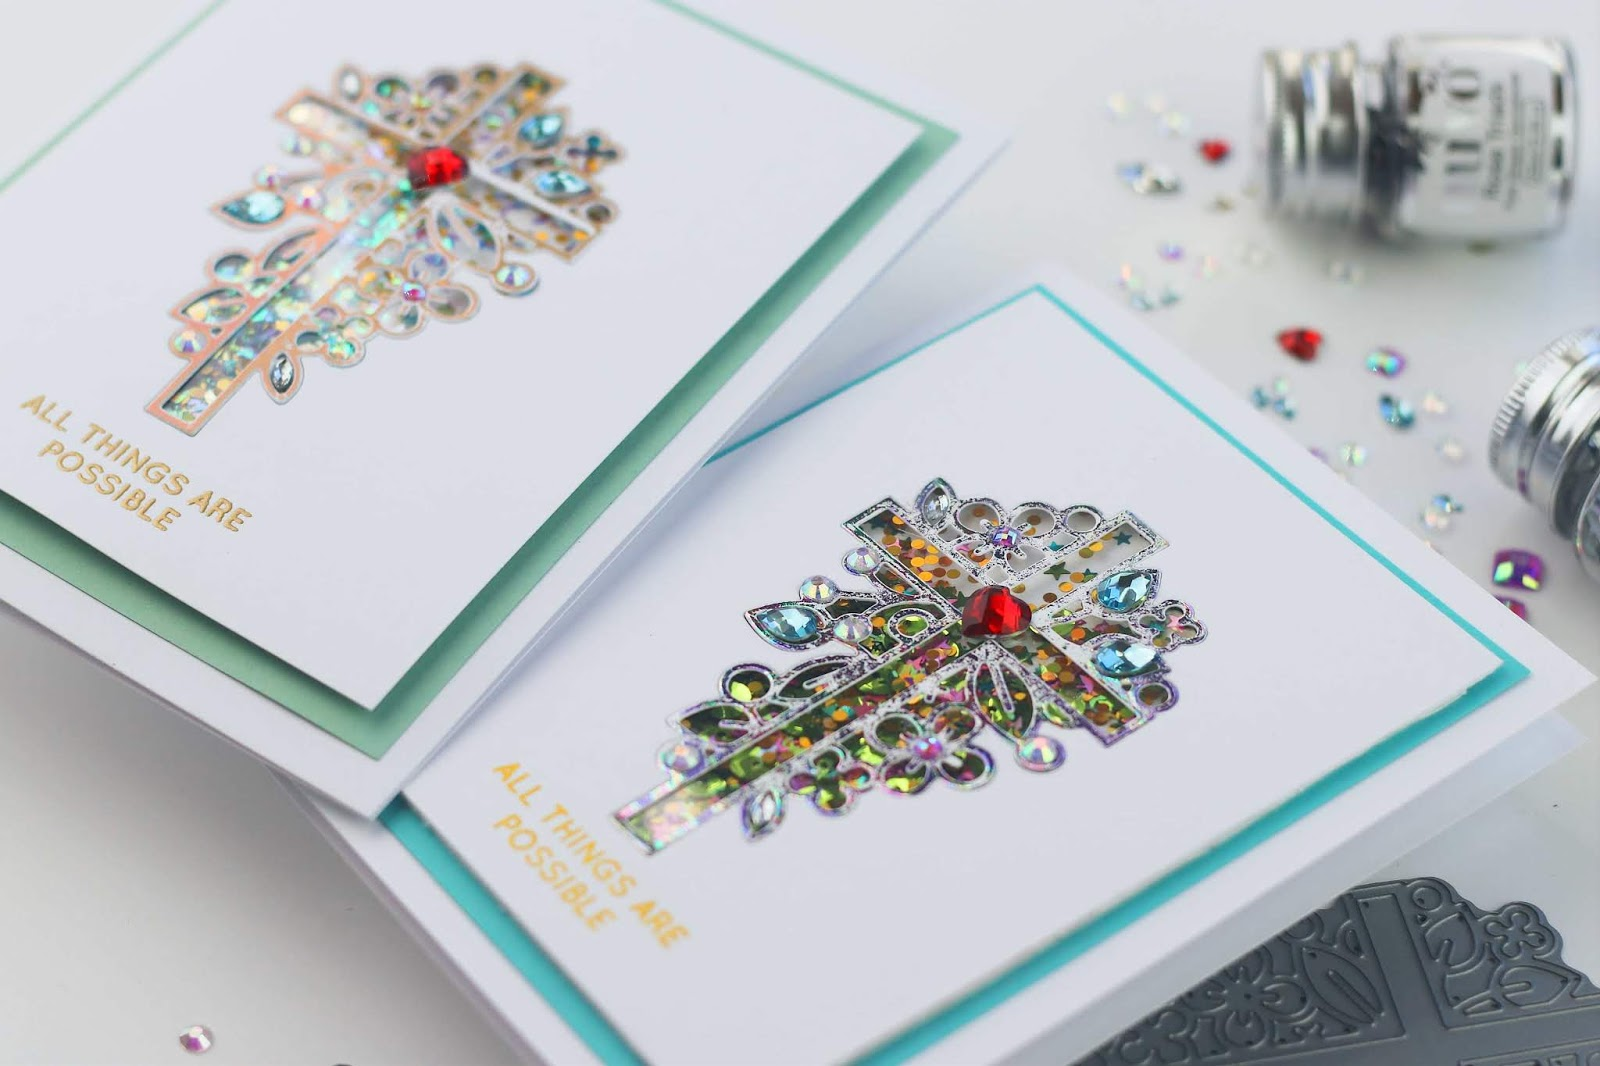 Beaded Foiled Shaker cards with Outline Floral Cross by Simon Says Stamp